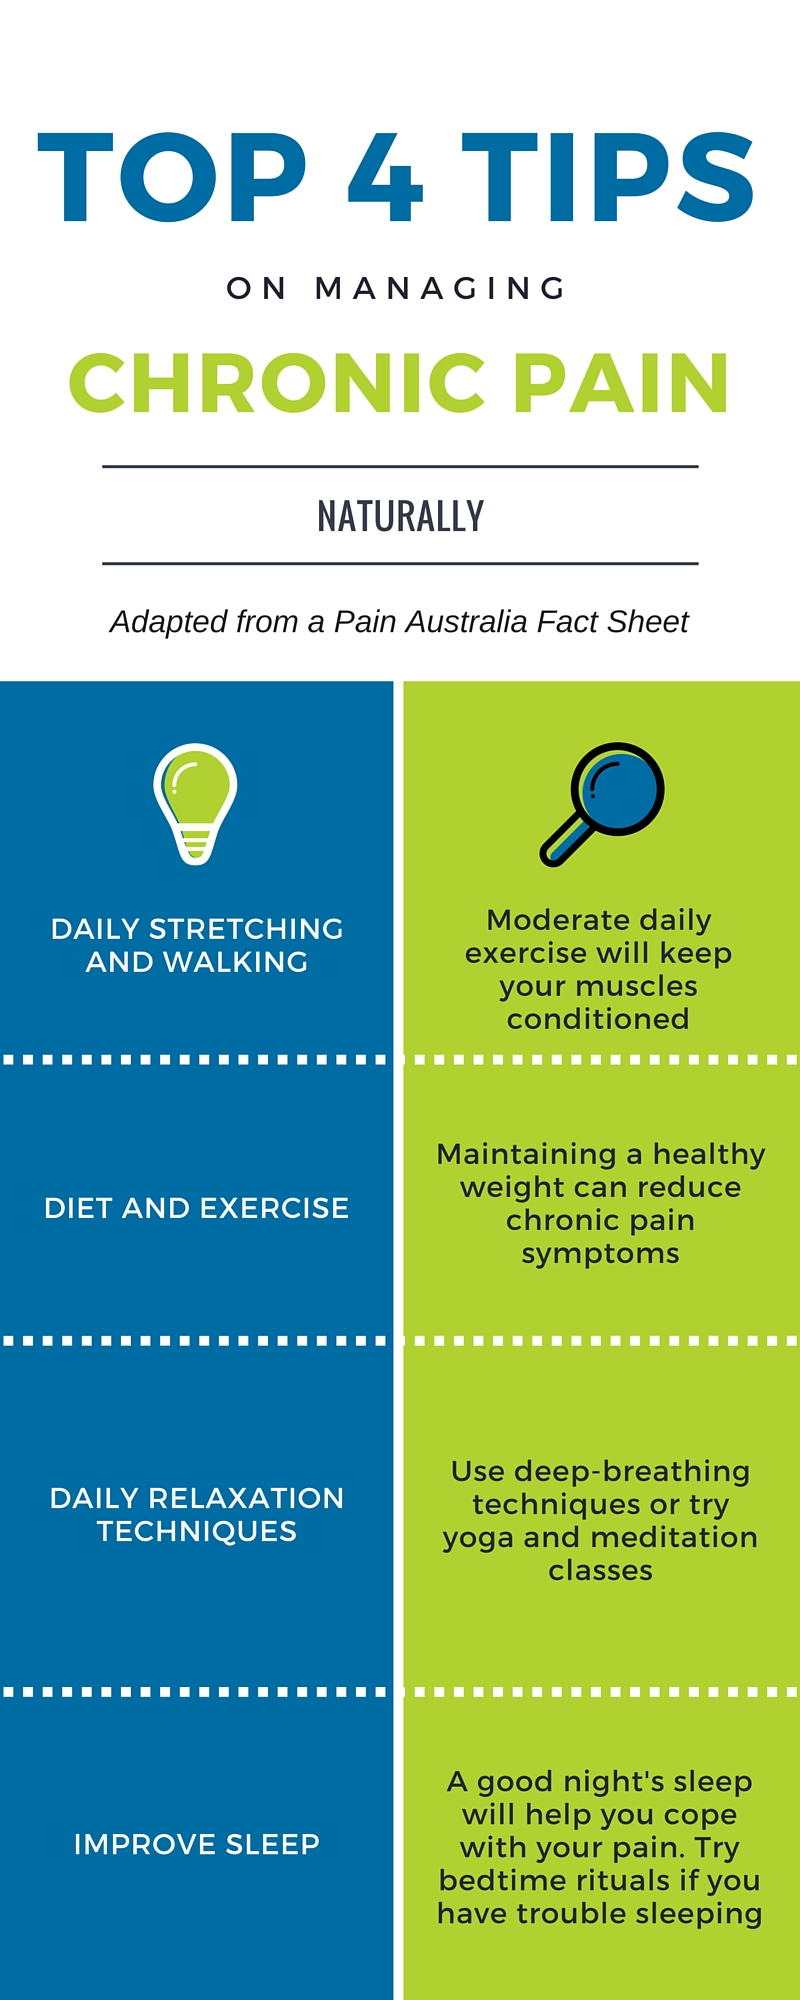 Tips for Managing Chronic Pain naturally